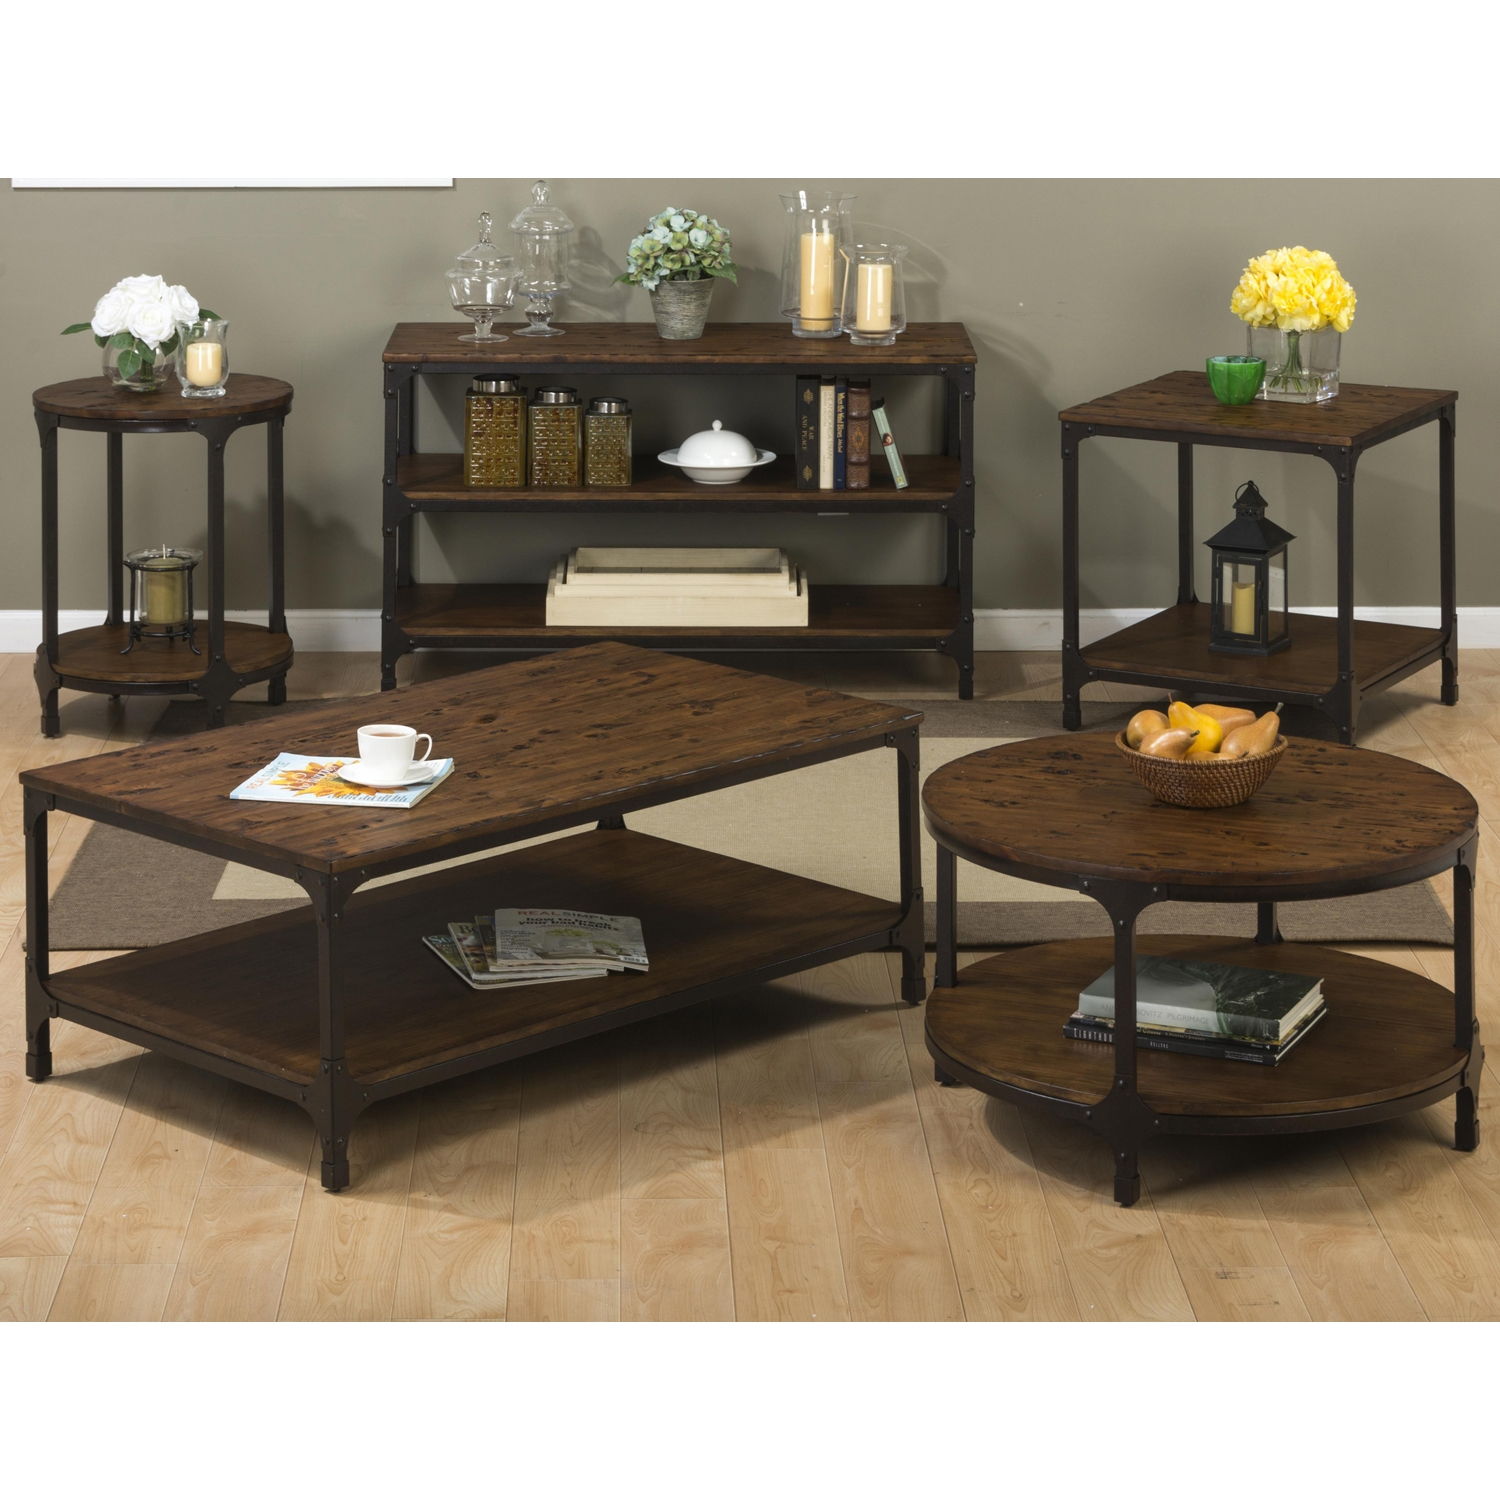 Urban Nature Rectangle Cocktail Table - JOFR-785-1